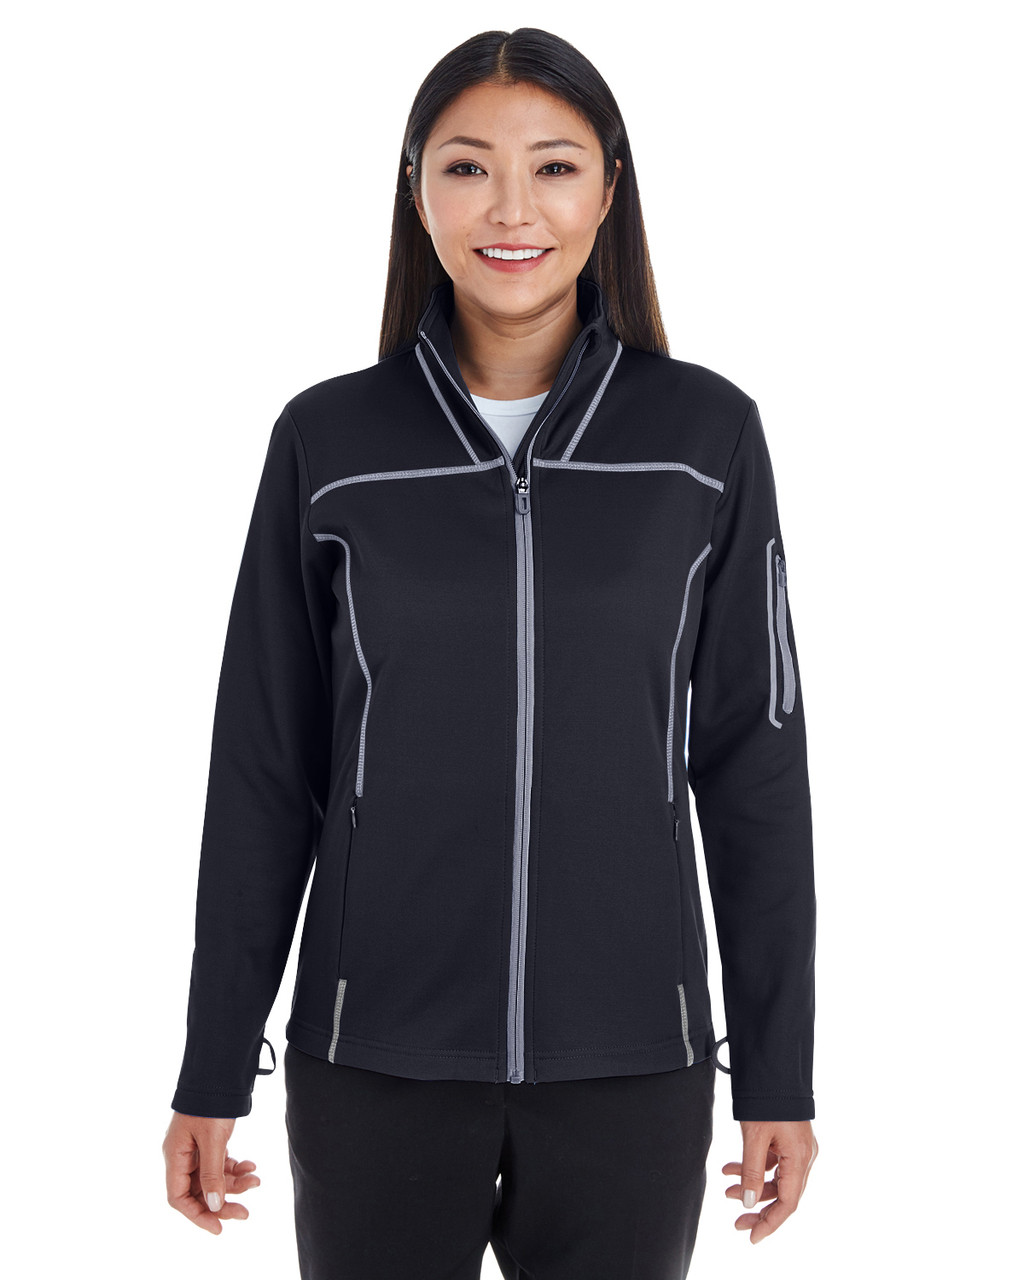 Black/Grey/Grey - FRONT  - NE703W Ash City - North End Ladies' Endeavor Interactive Performance Fleece Jacket | Blankclothing.ca